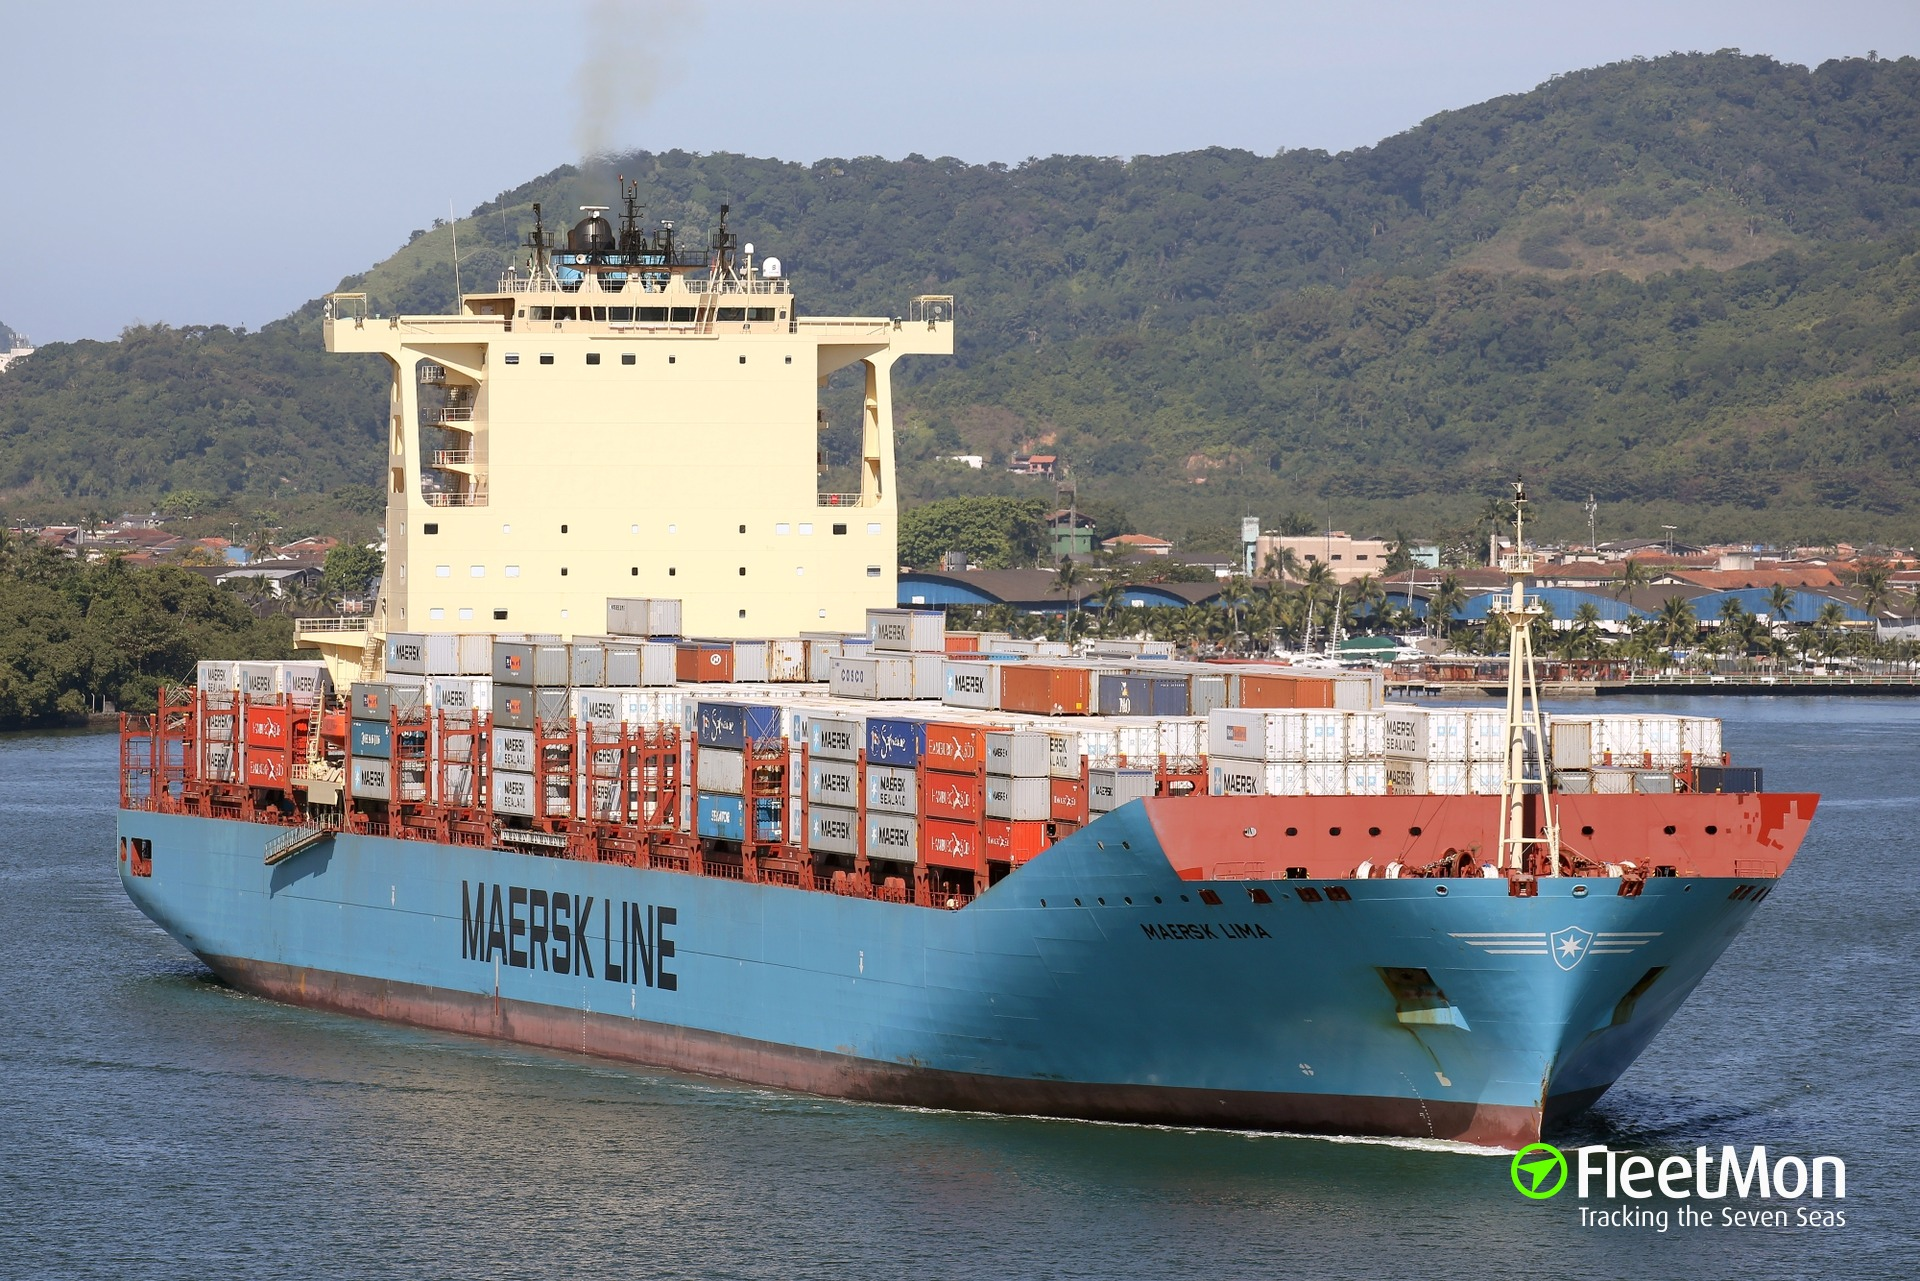 Four containers fell into water from boxship MAERSK LIMA, Brazil